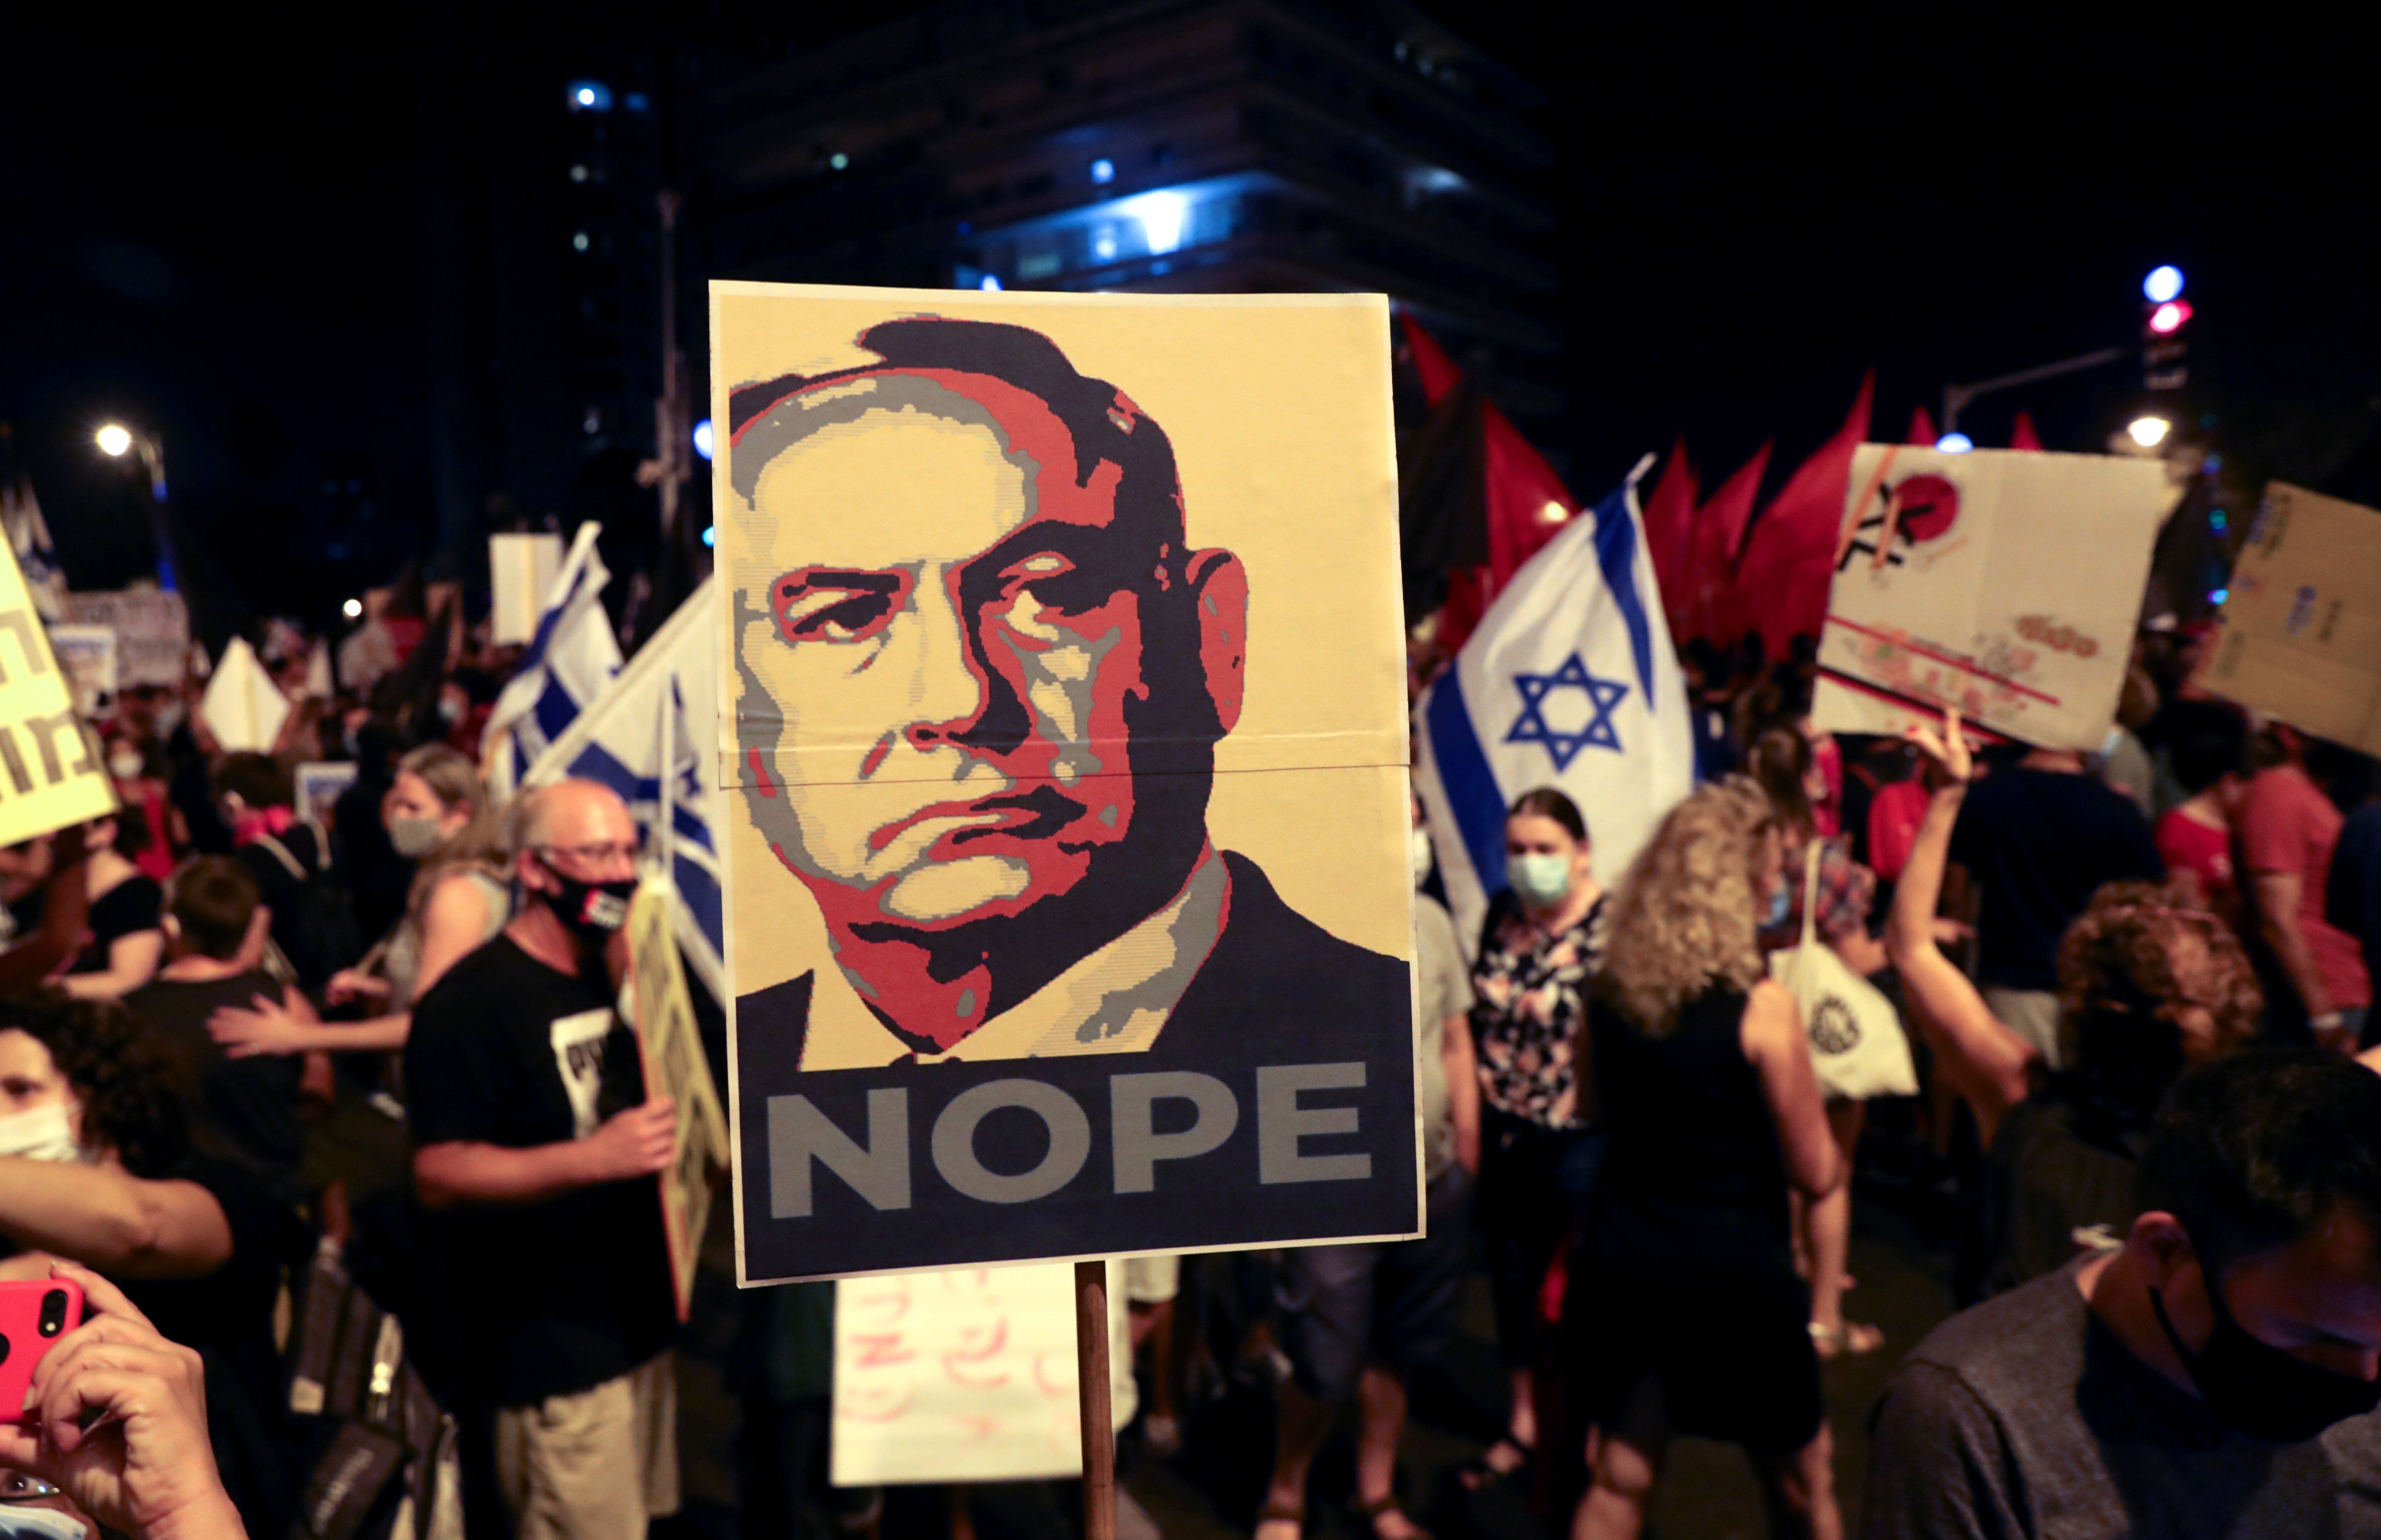 A placard with an image of Israeli Prime Minister Benjamin Netanyahu is seen during a demonstration against his alleged corruption and the government's handling of the coronavirus disease (COVID-19) pandemic, in Jerusalem September 5, 2020